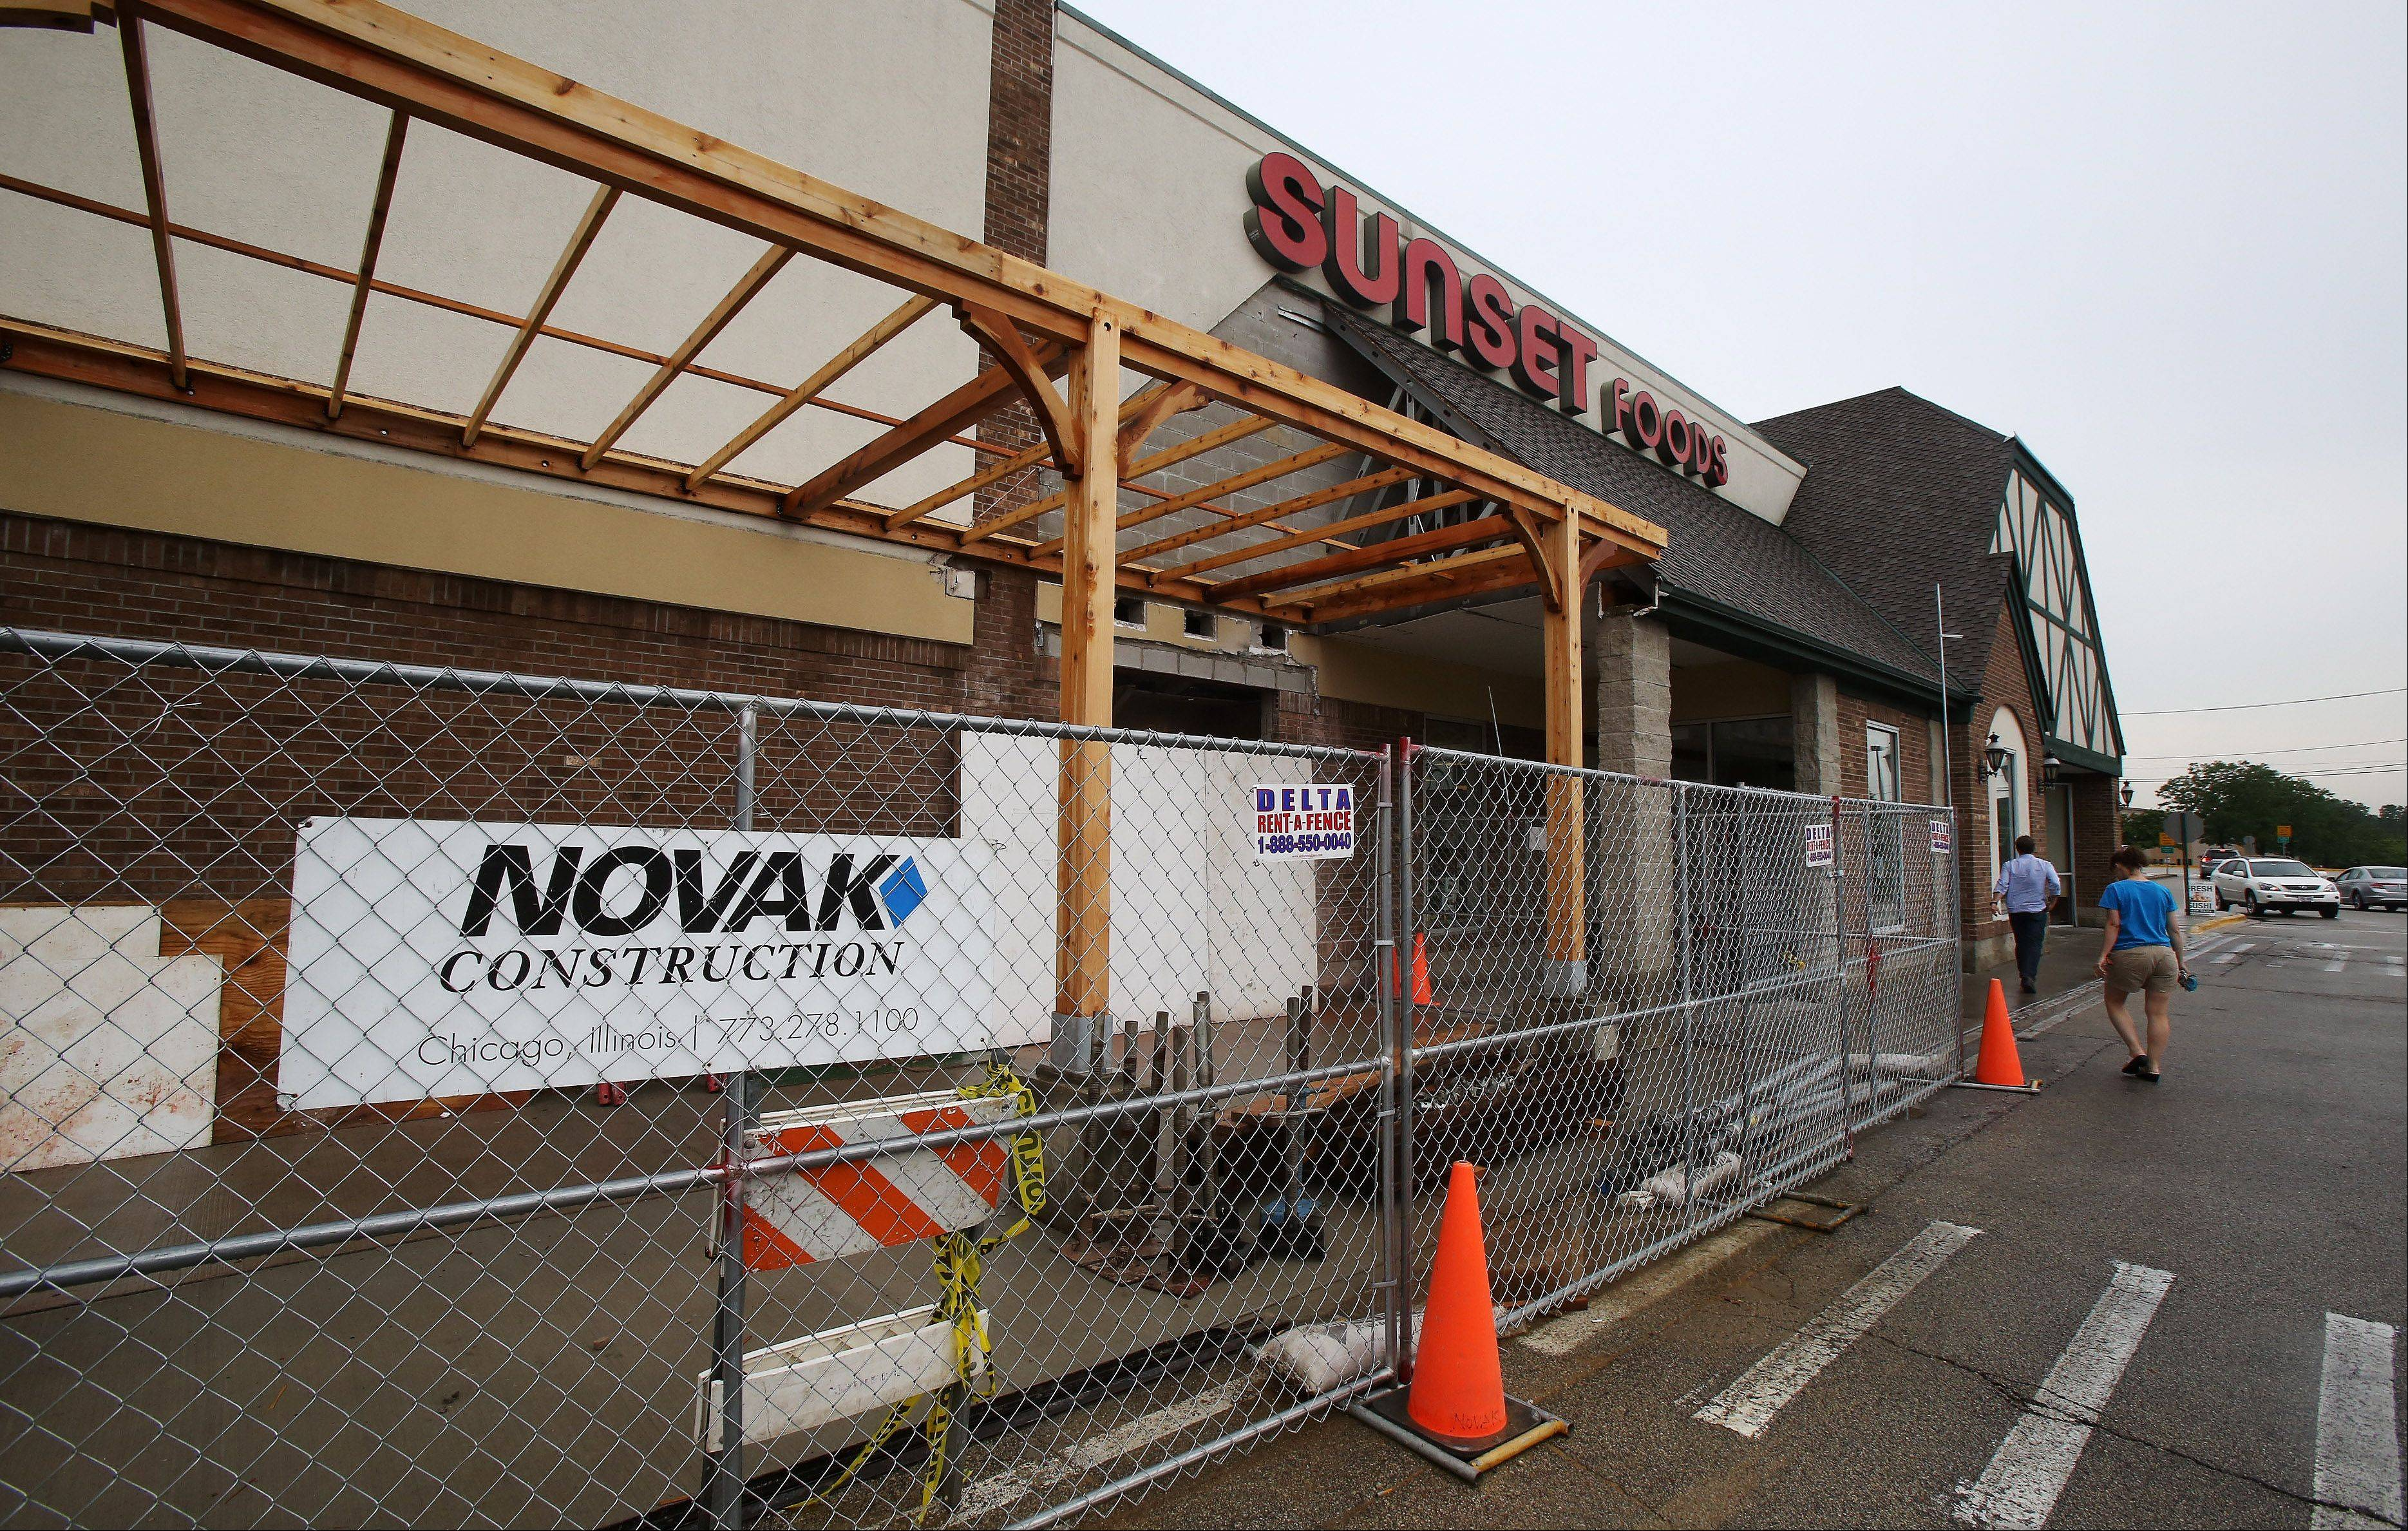 The outdoor cafe area at Sunset Foods in Libertyville will seat 75 as part of an ongoing renovation to include a full-service floral design center and a small bar selling craft beers.